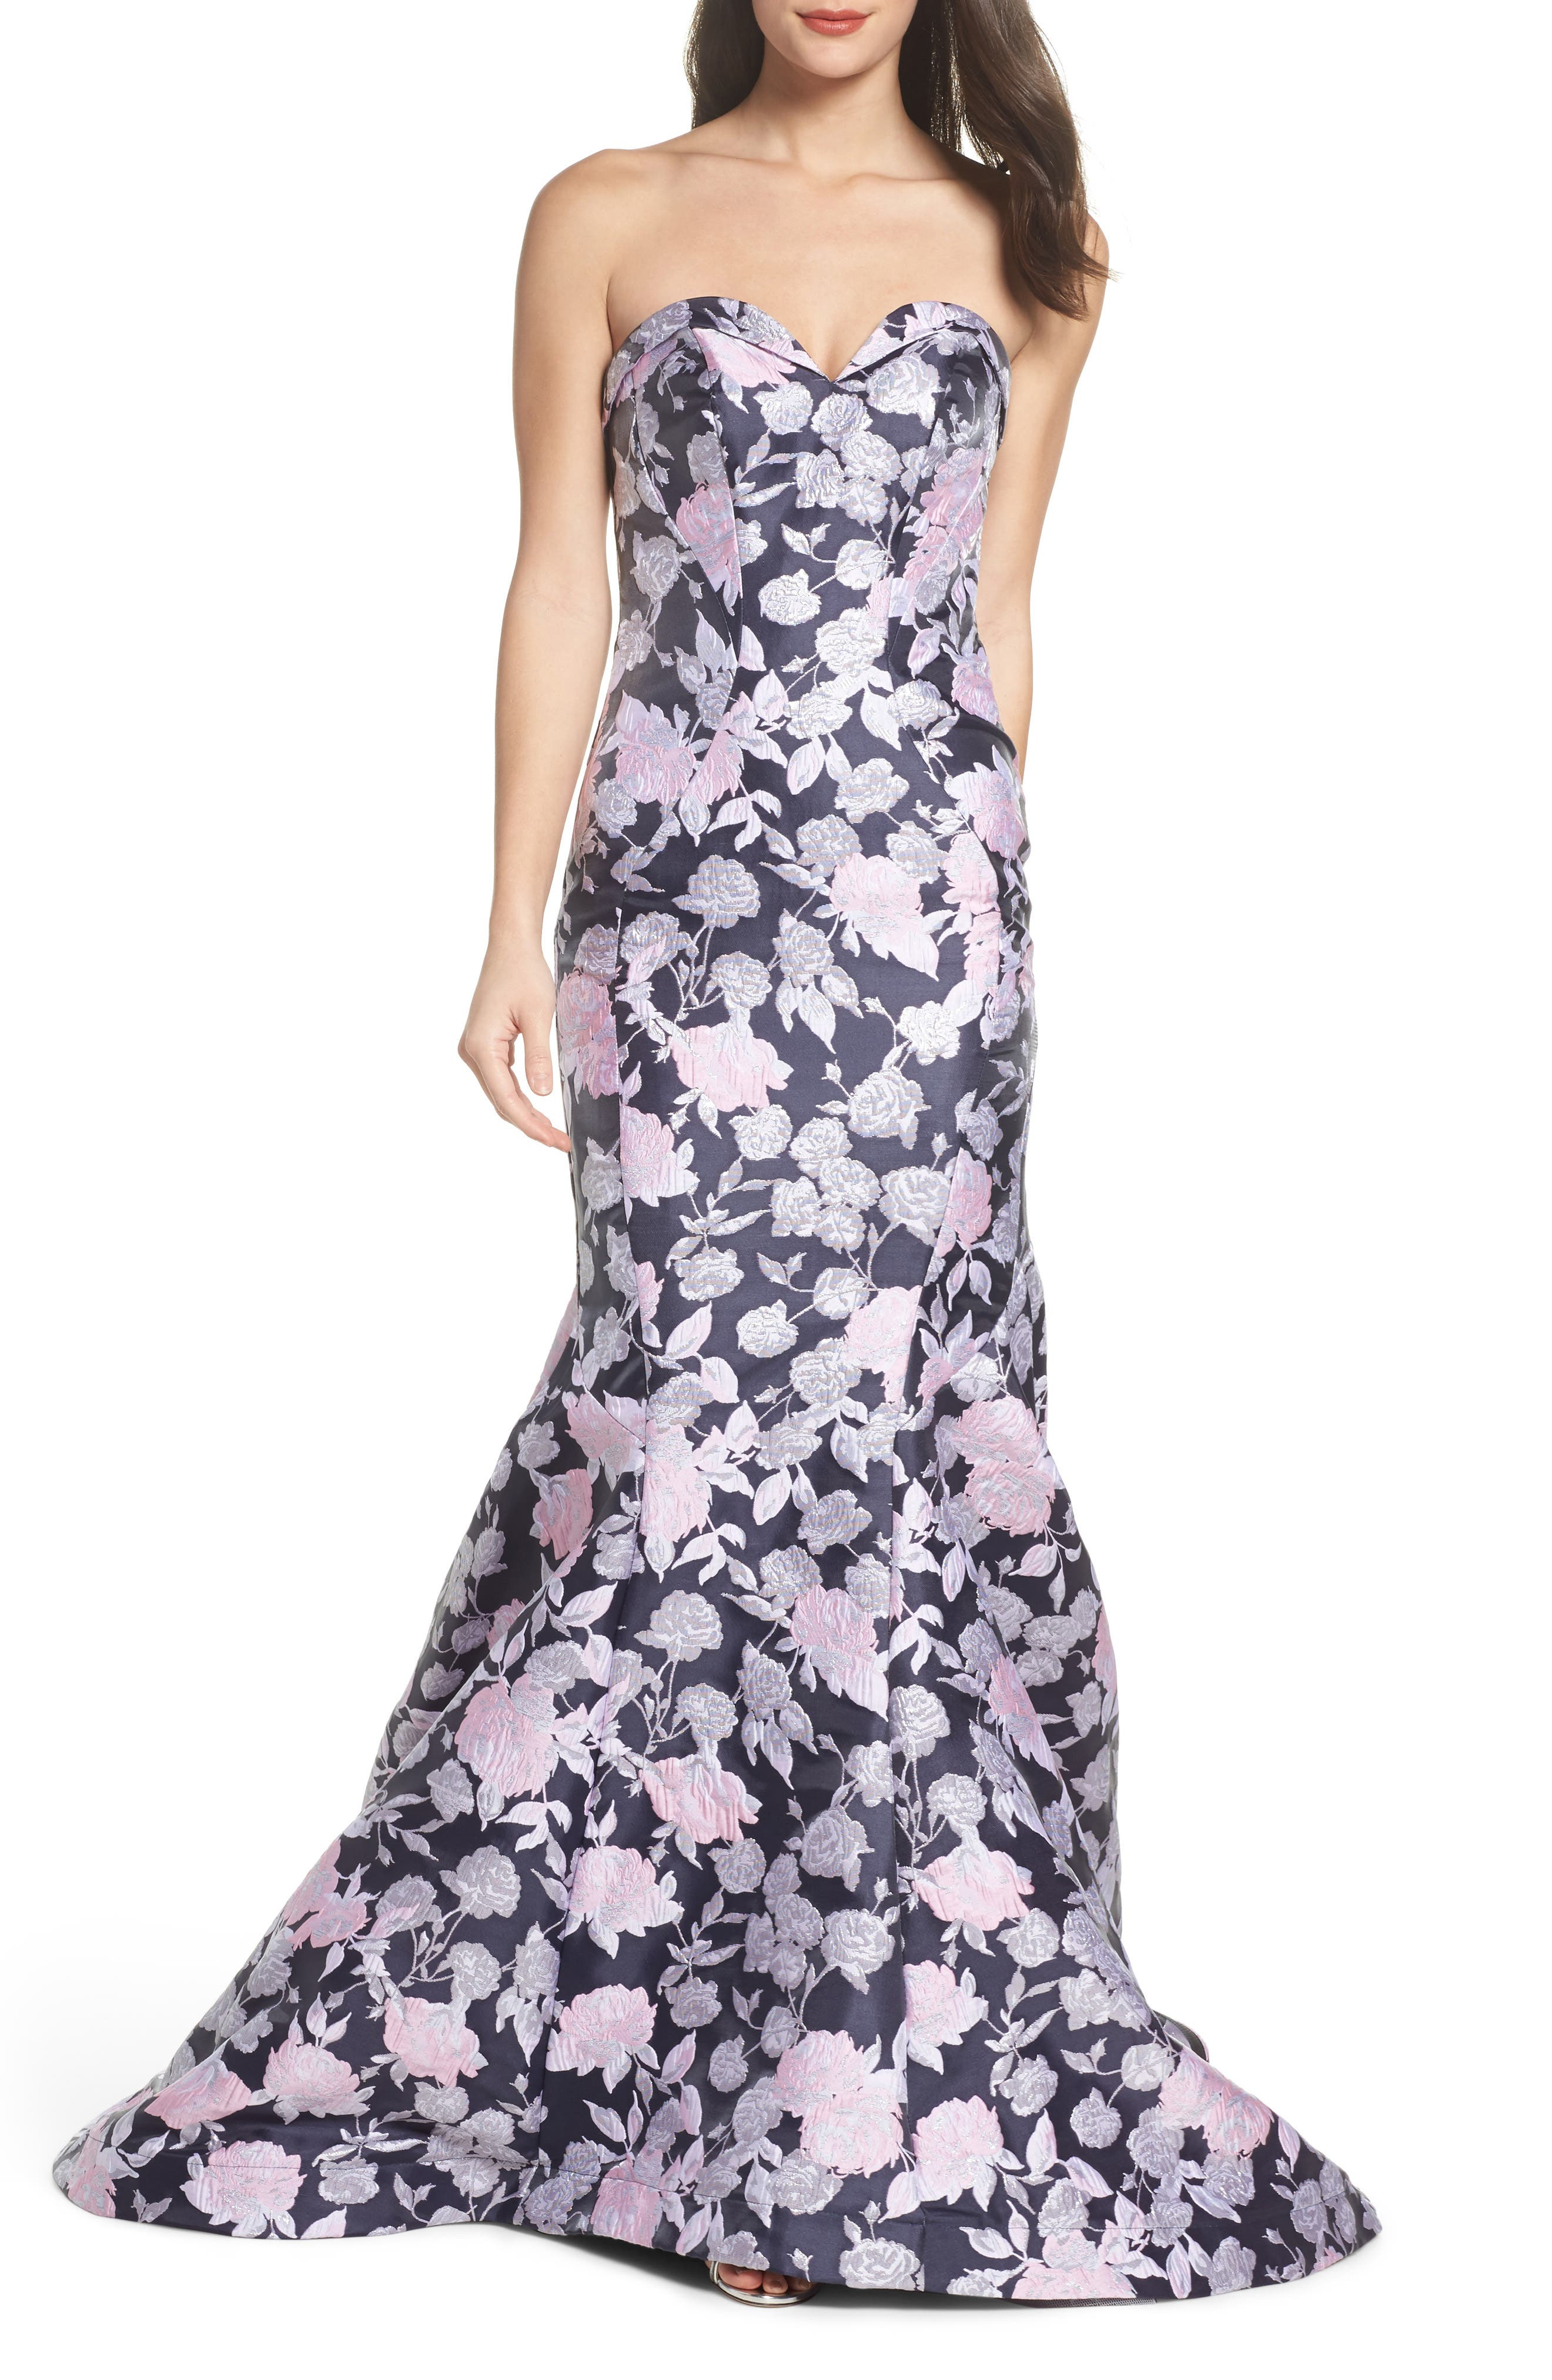 Floral Jacquard Strapless Mermaid Gown,                             Main thumbnail 1, color,                             416